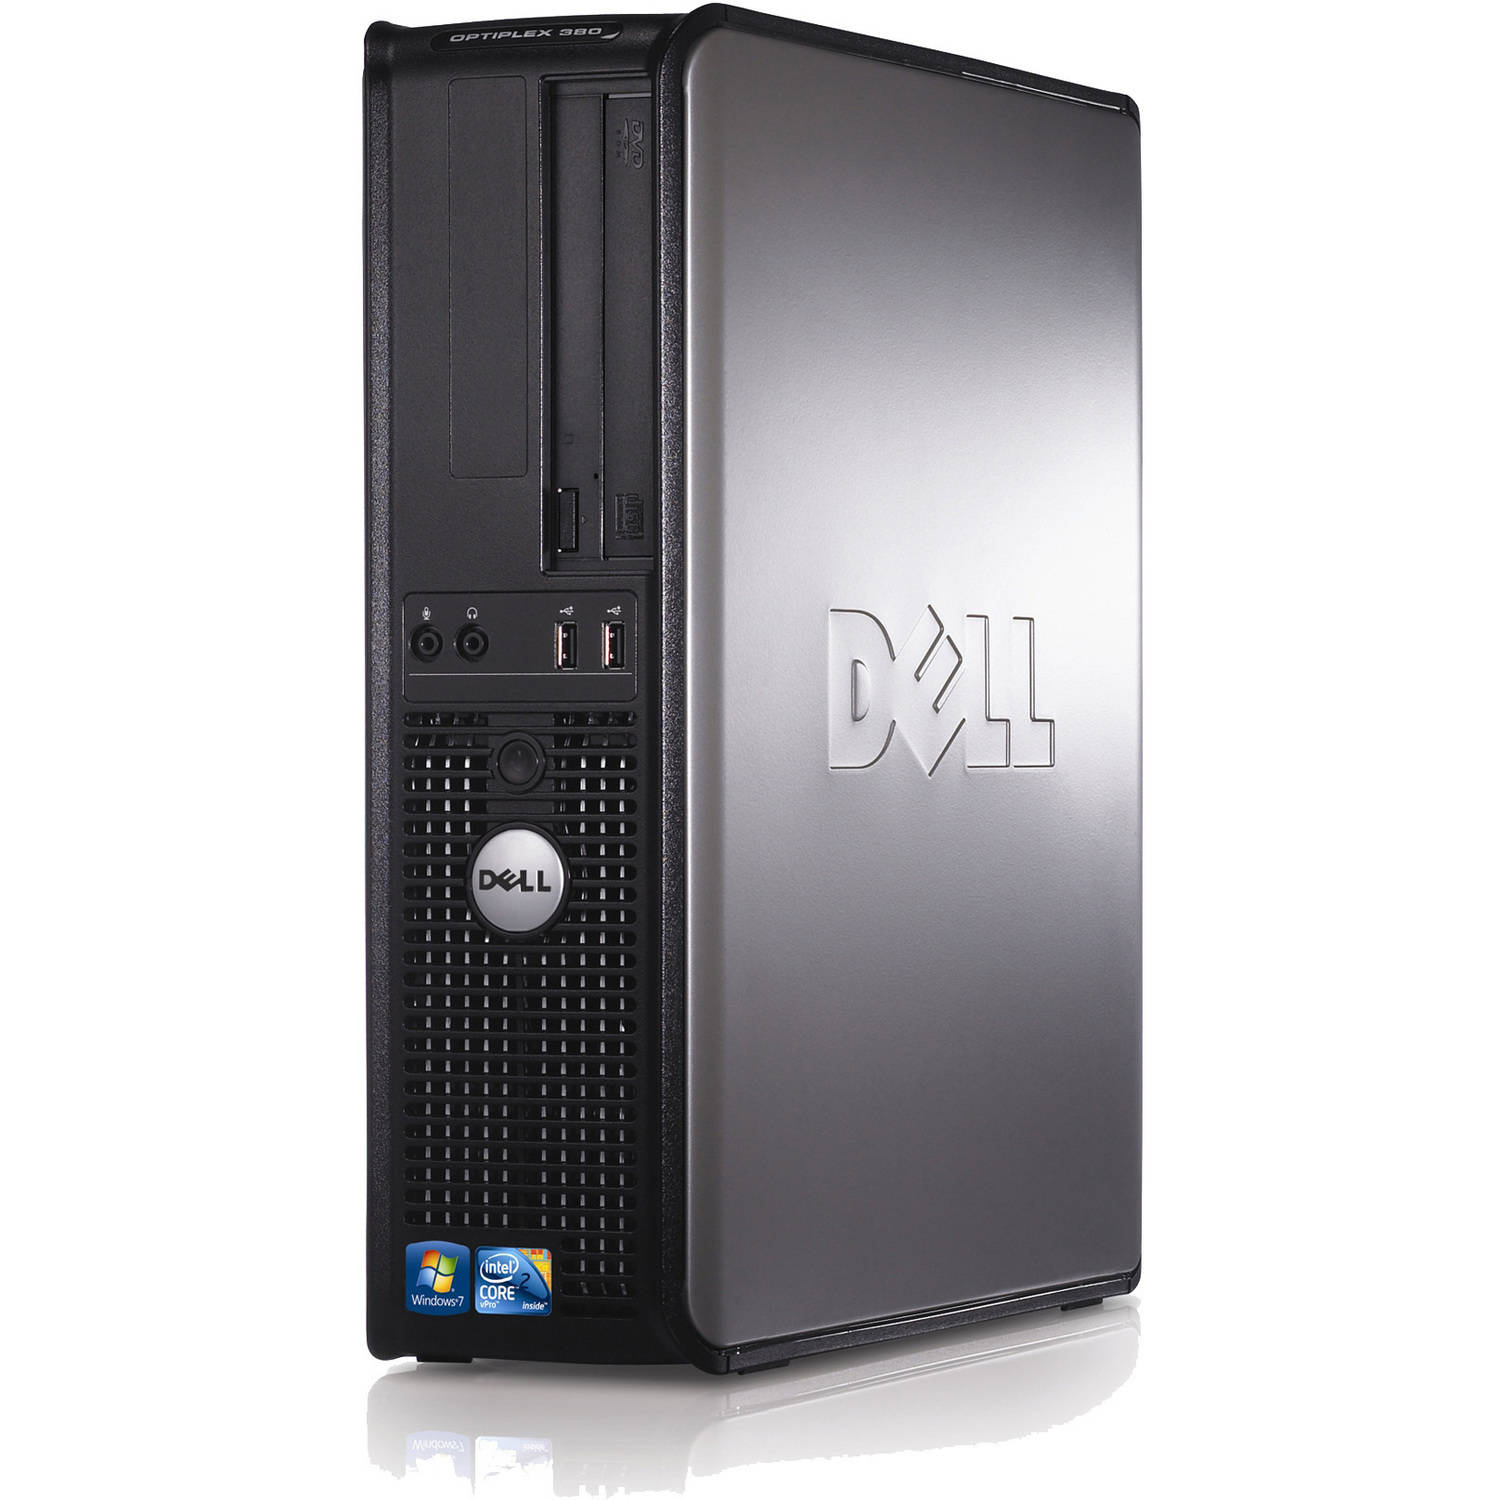 Dell OptiPlex 380 P2012H Monitor Driver Download